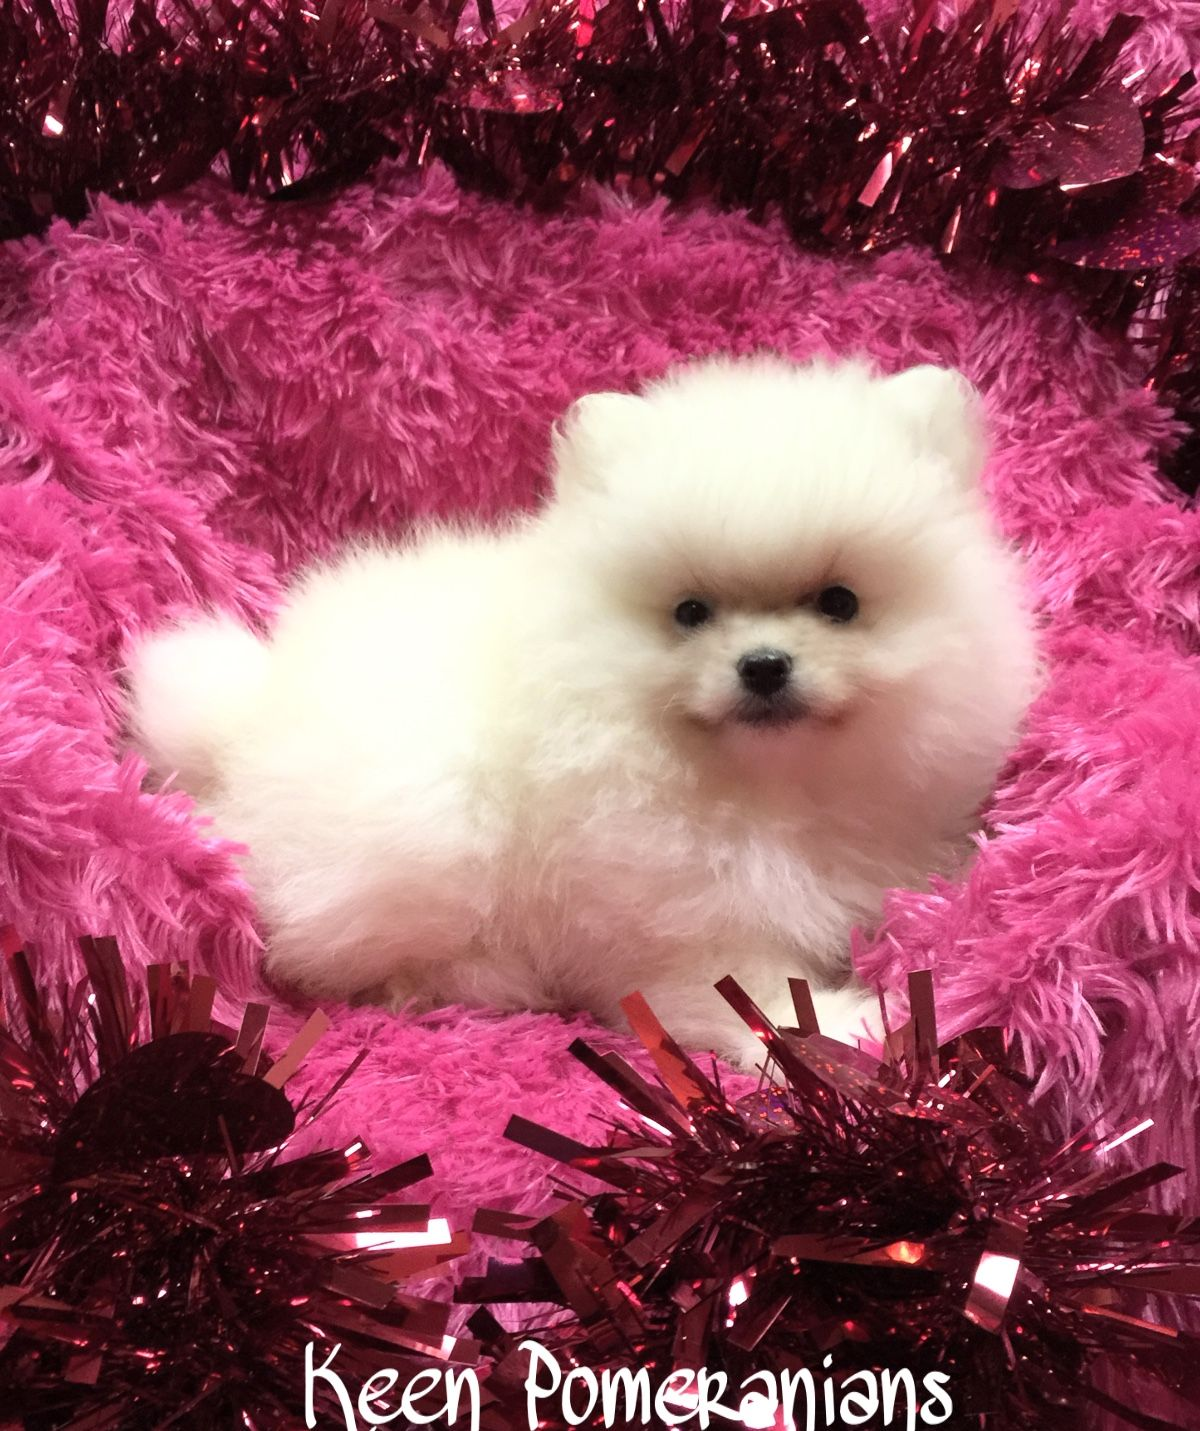 This Is What A True White Pomeranian Looks Like Don T Fall For Those So Called Teacup Scams A Real Pom Will Always Look Pomeranian White Pomeranian Puppies